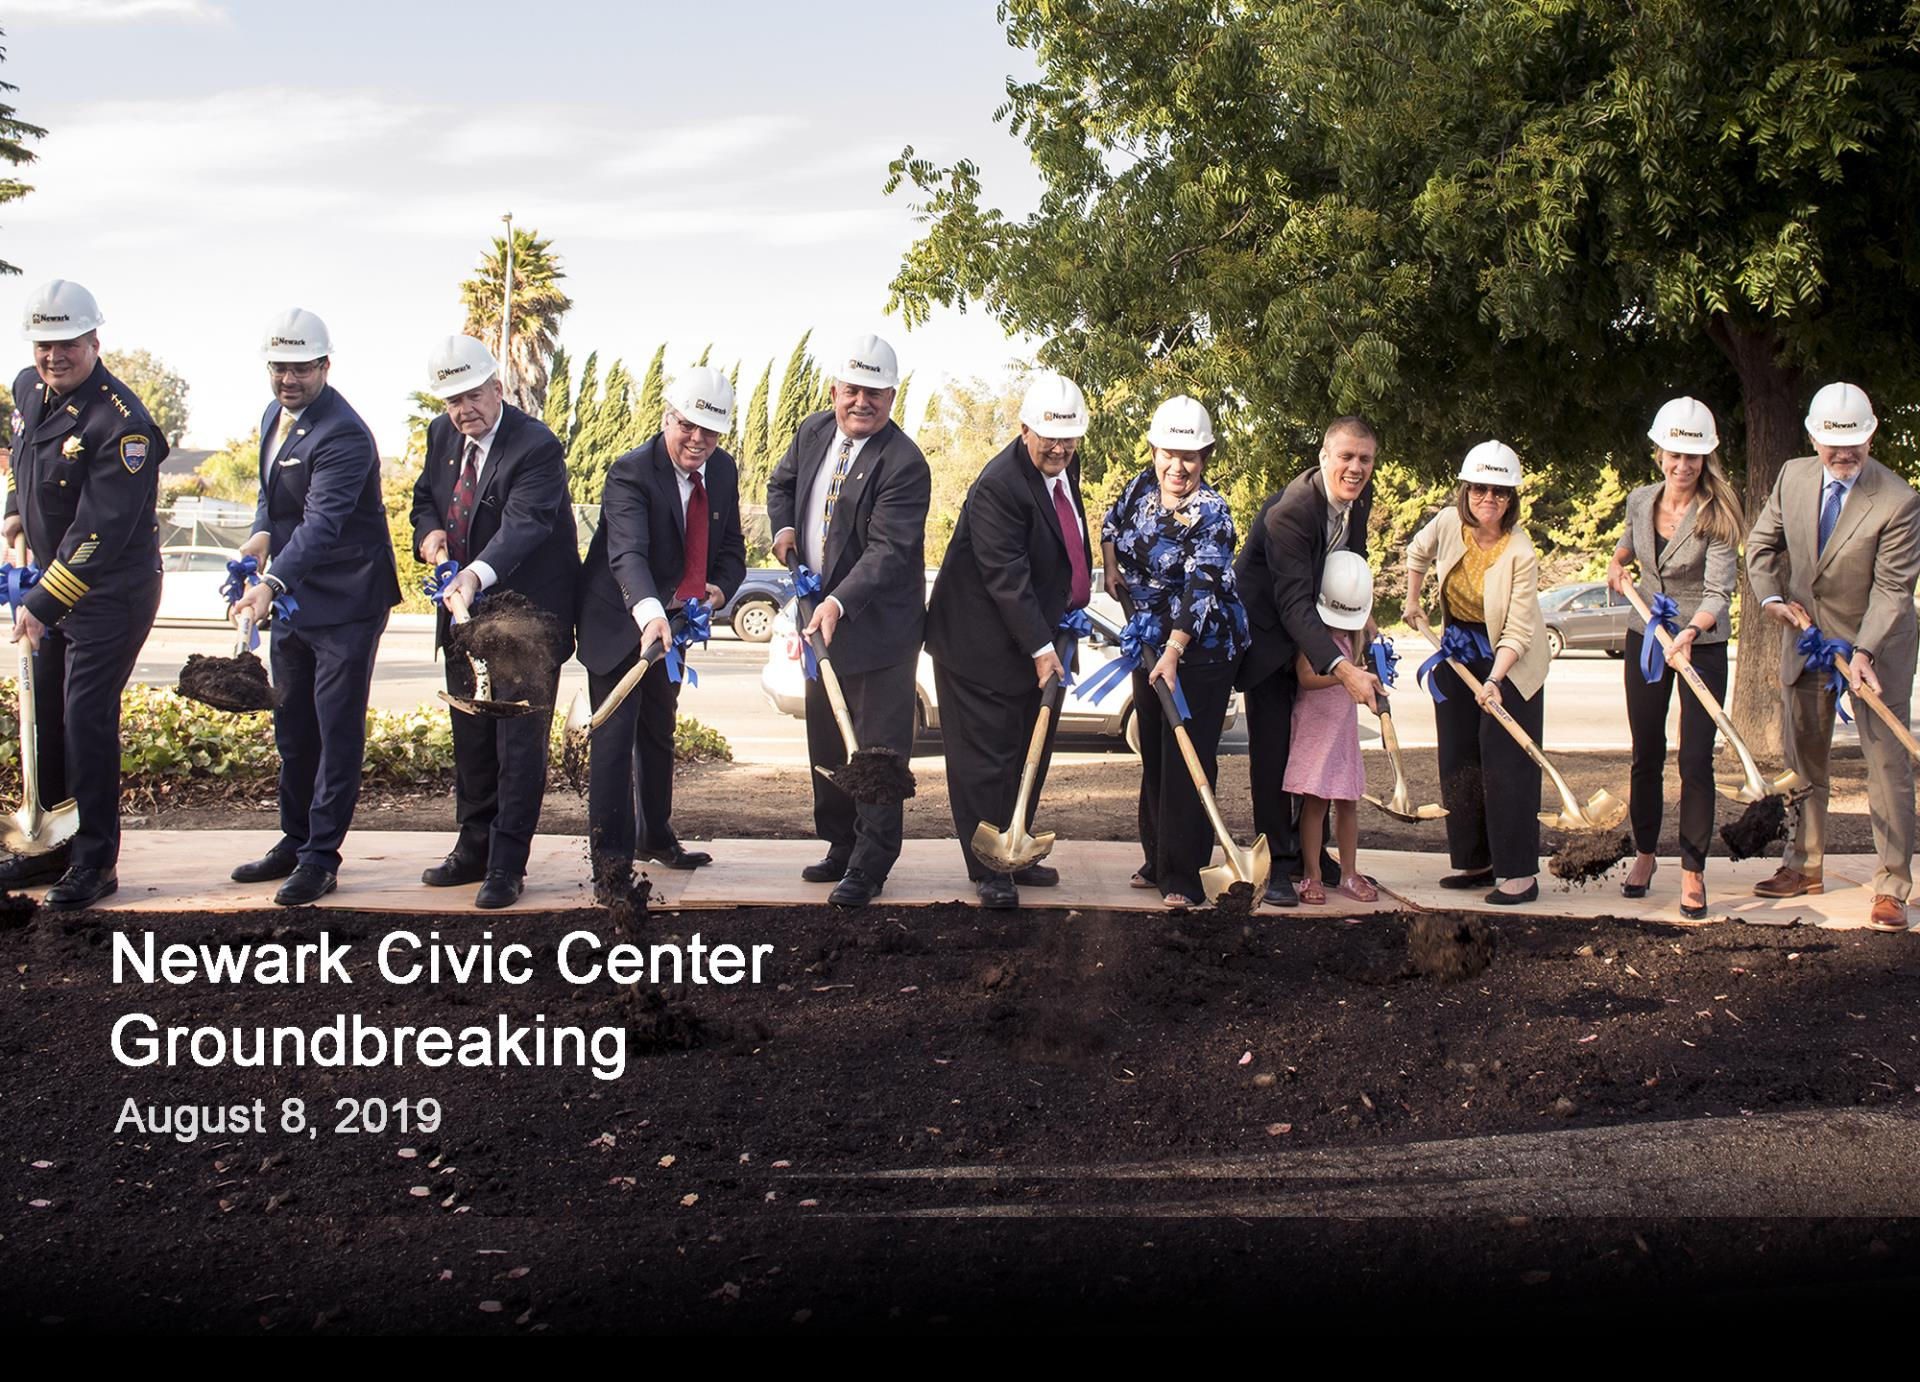 Groundbreaking Photo2